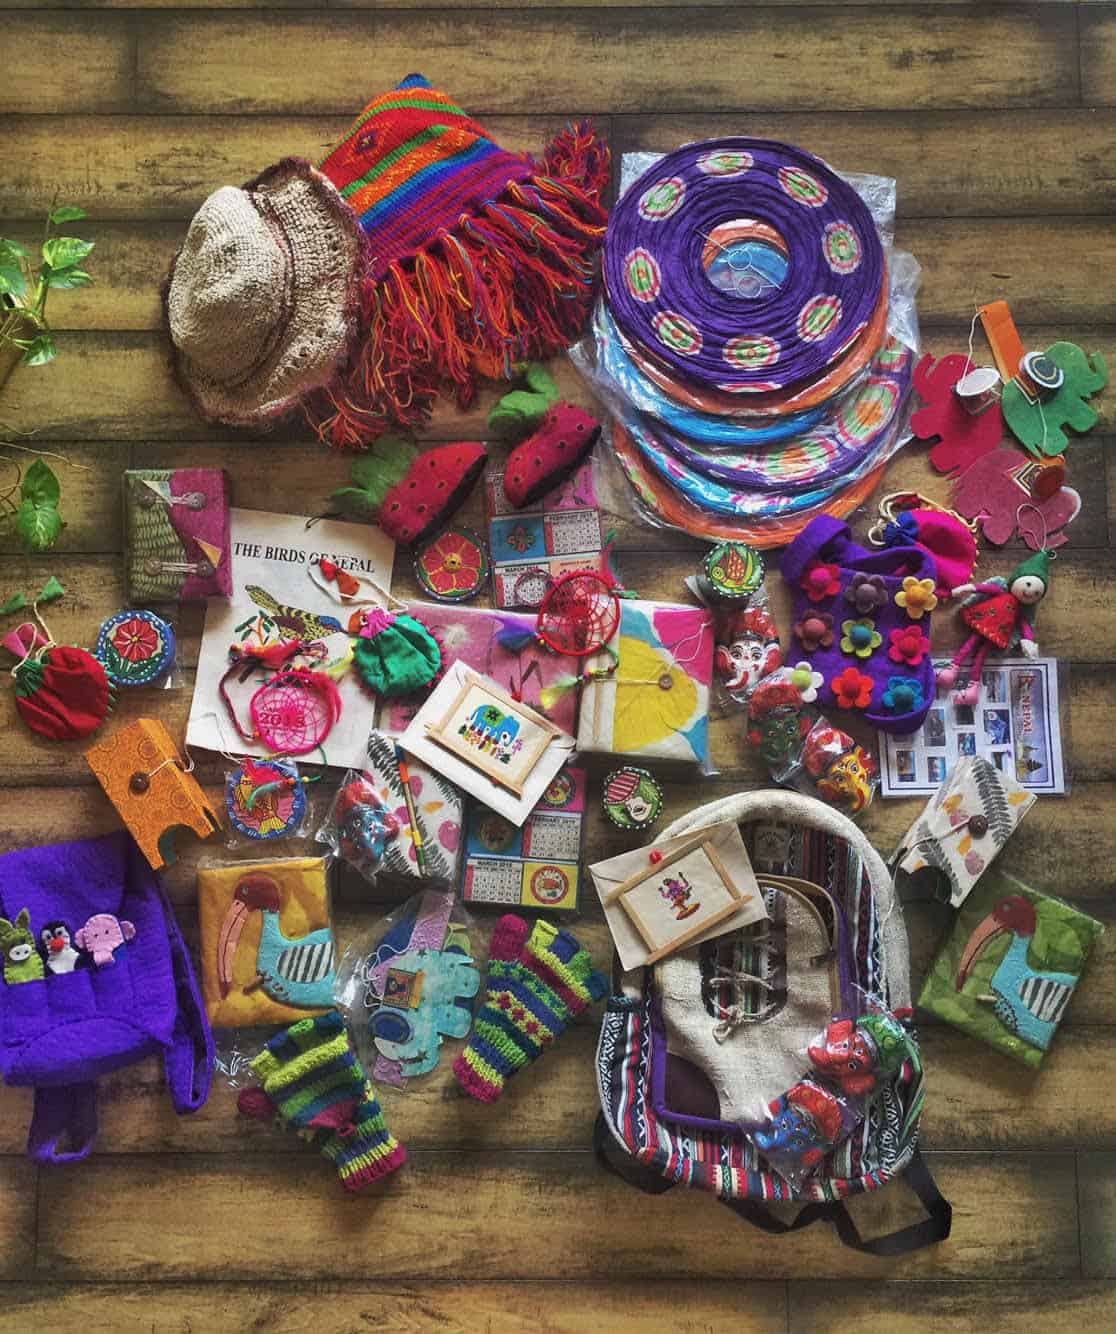 Traveler Tuesday - Divsi of Quirky Wanderer Loot from Nepal